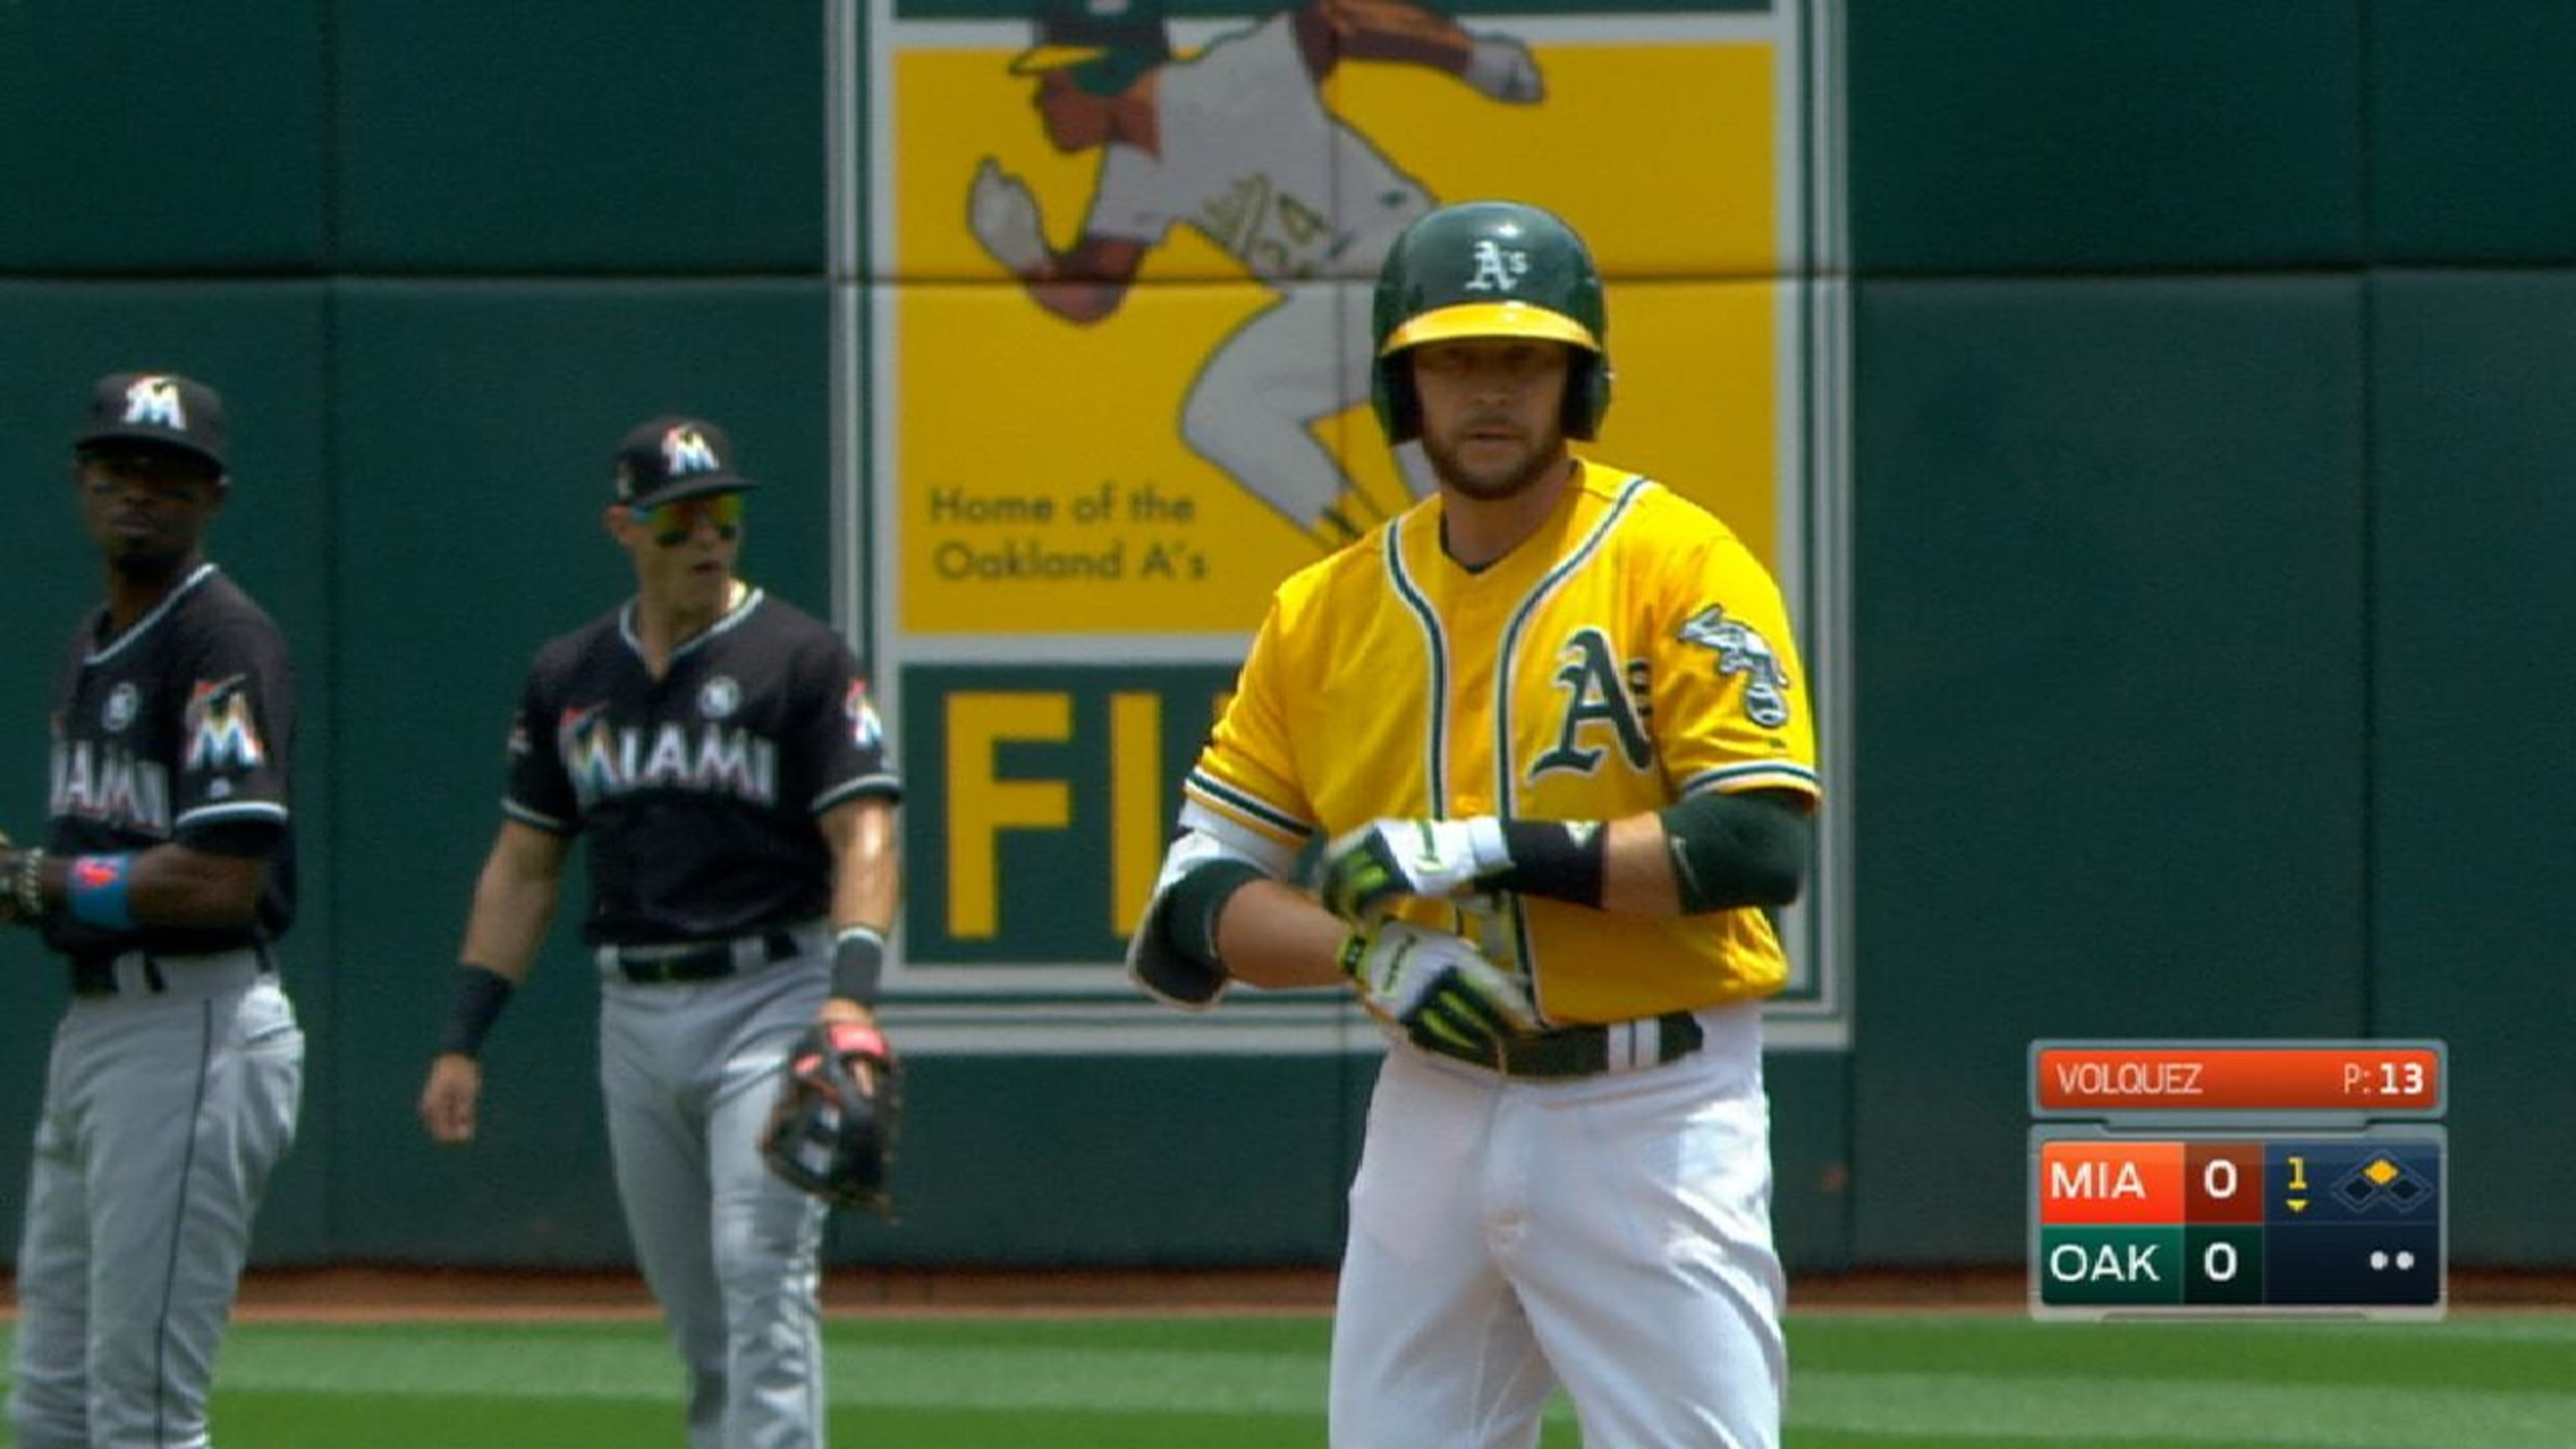 Athletics' Jed Lowrie a steady producer at 2B